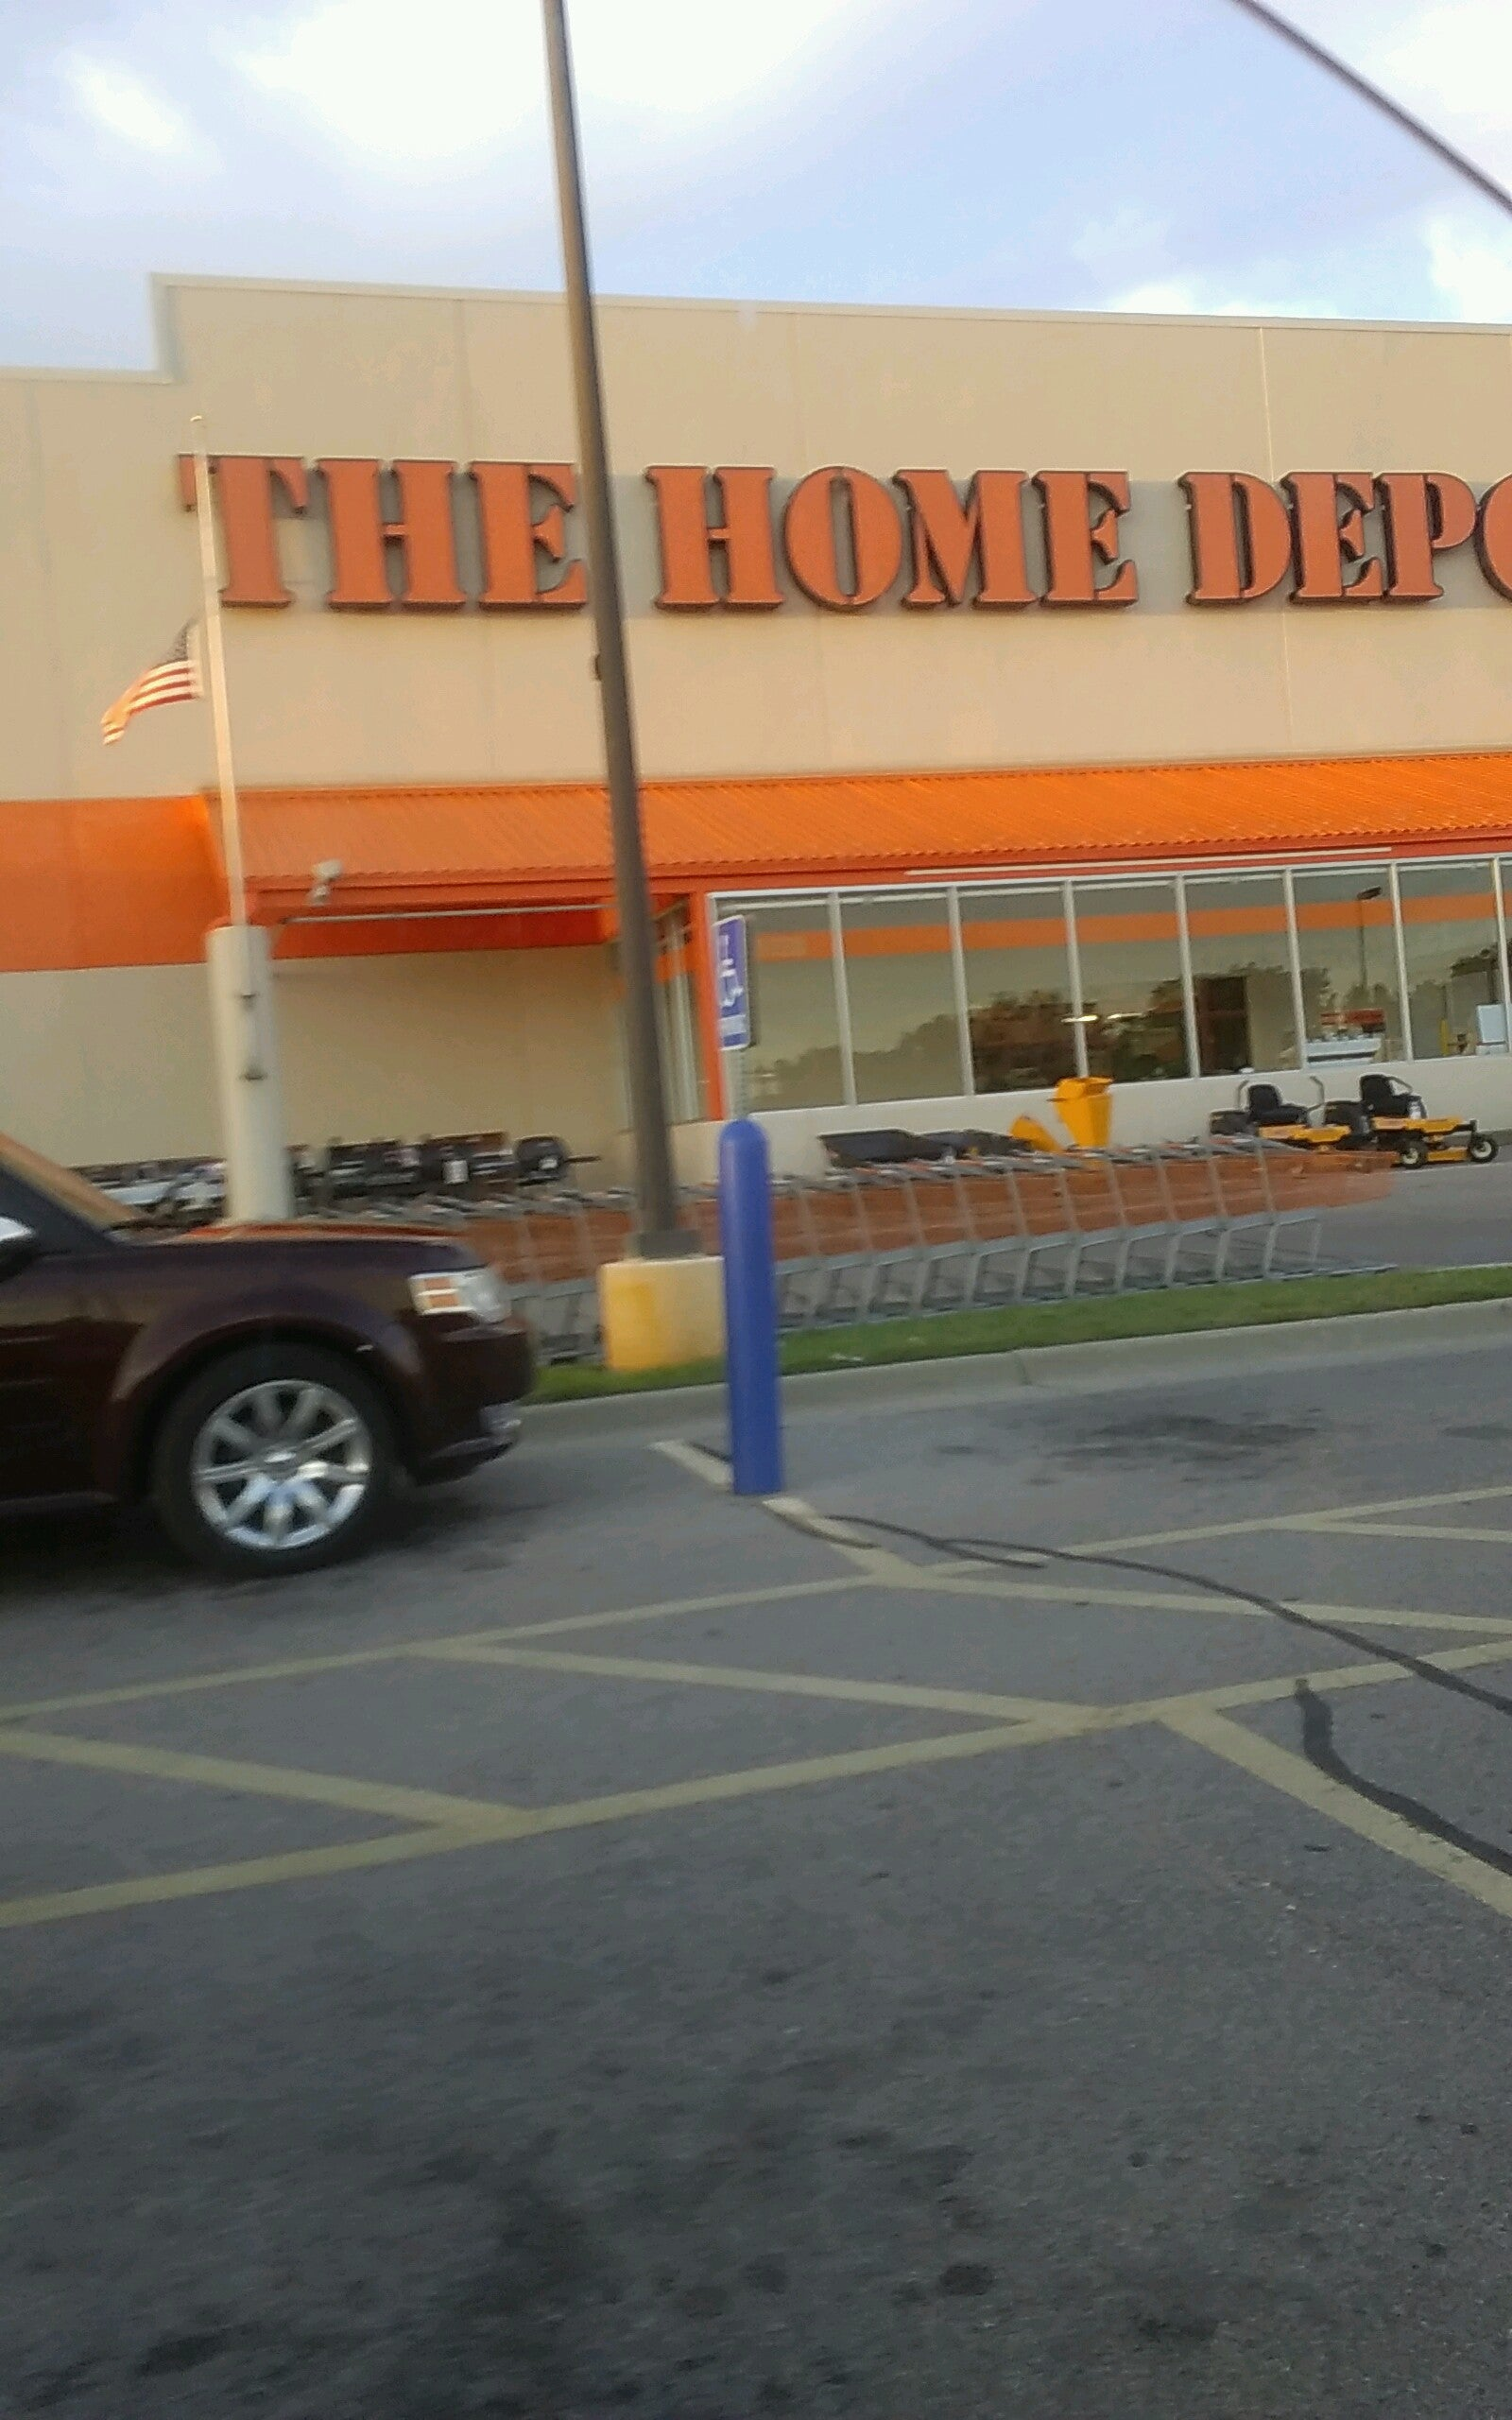 The Home Depot at 3350 N Woodlawn Wichita KS